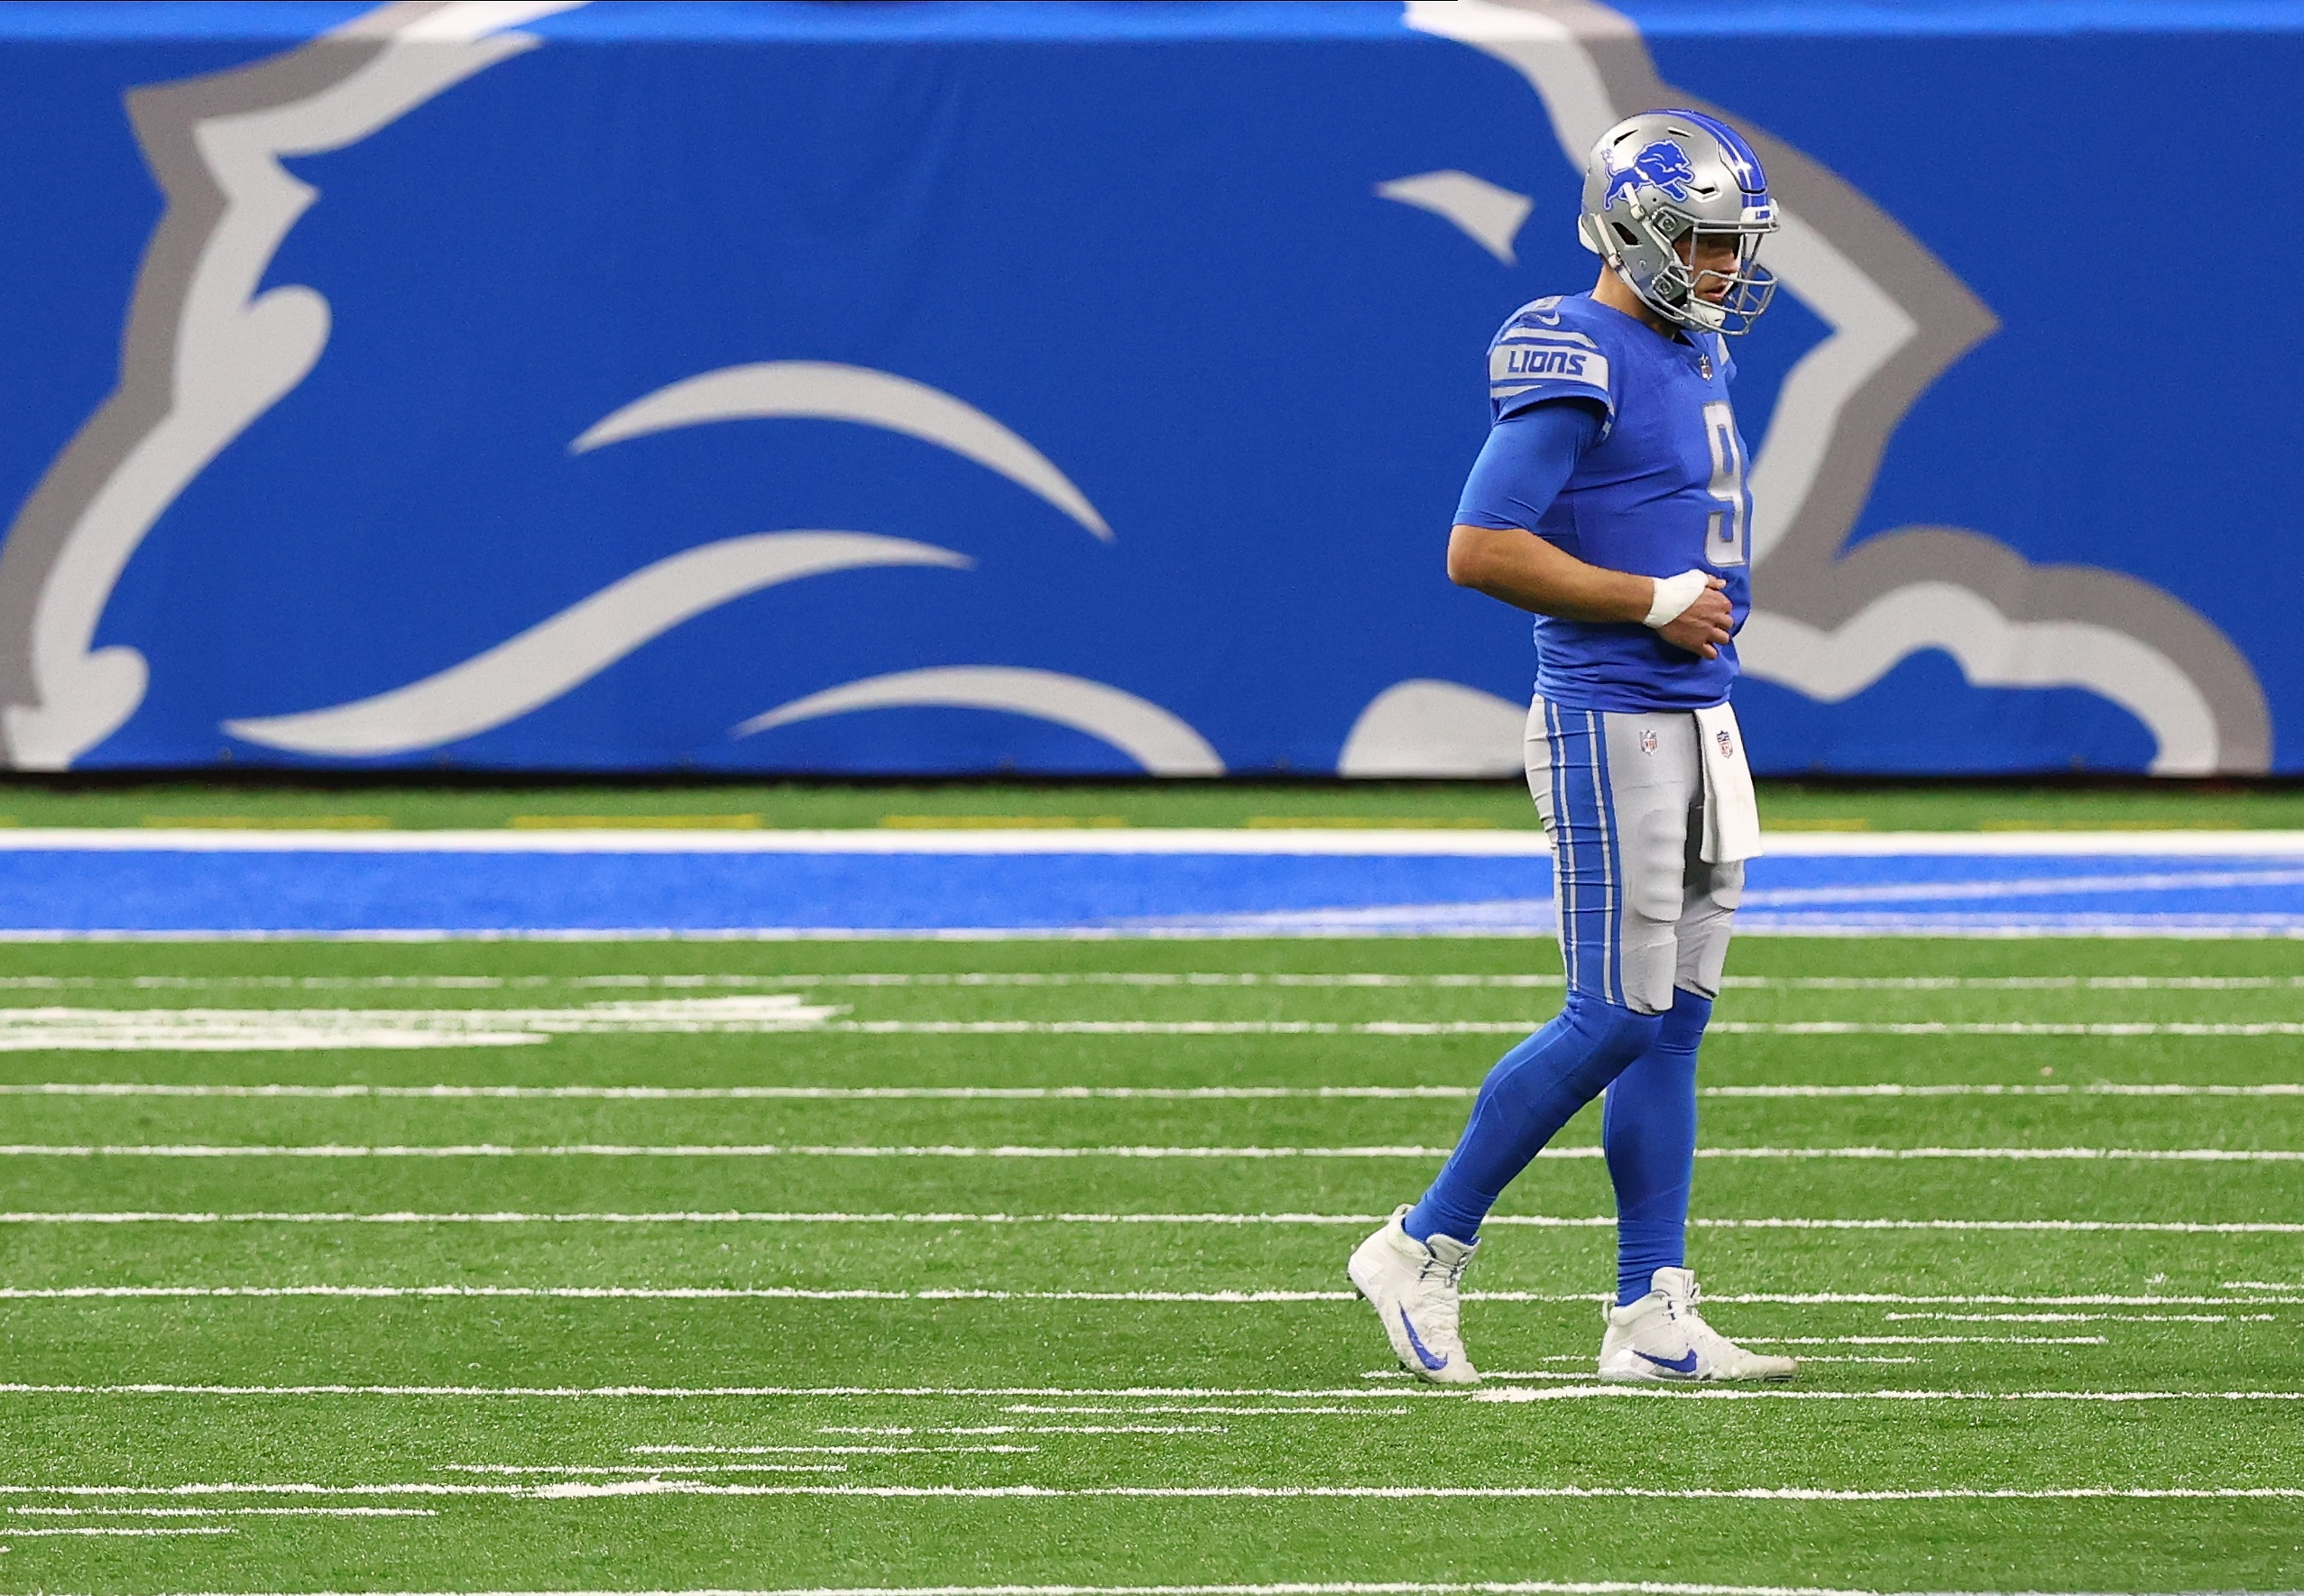 Turns Out Matthew Stafford Would Have Gone Anywhere But the New England Patriots